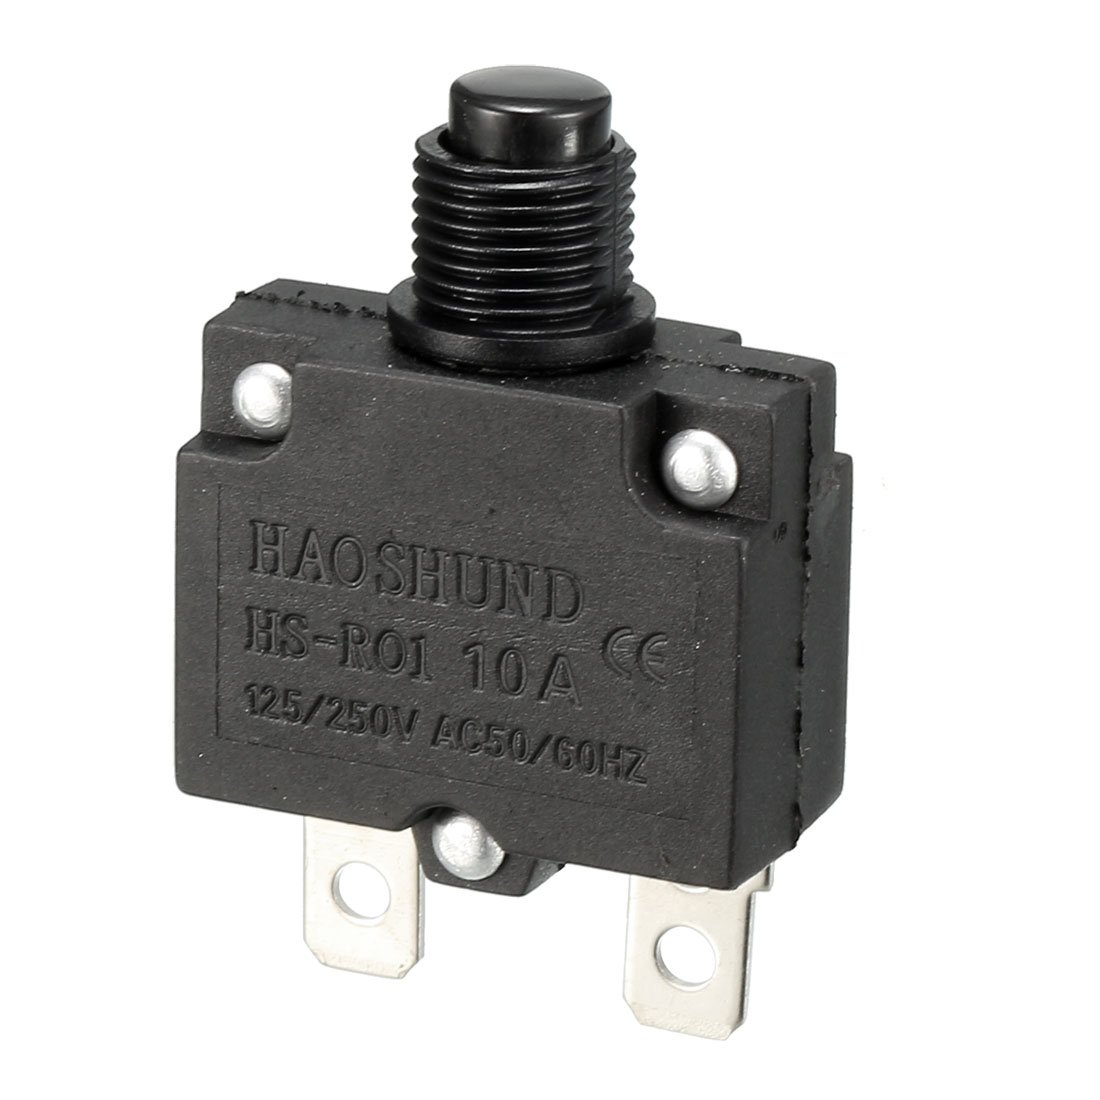 HS-R01 AC 125V/250V 10A 50/60Hz Momentary Press Button Switch Black 2 Terminals